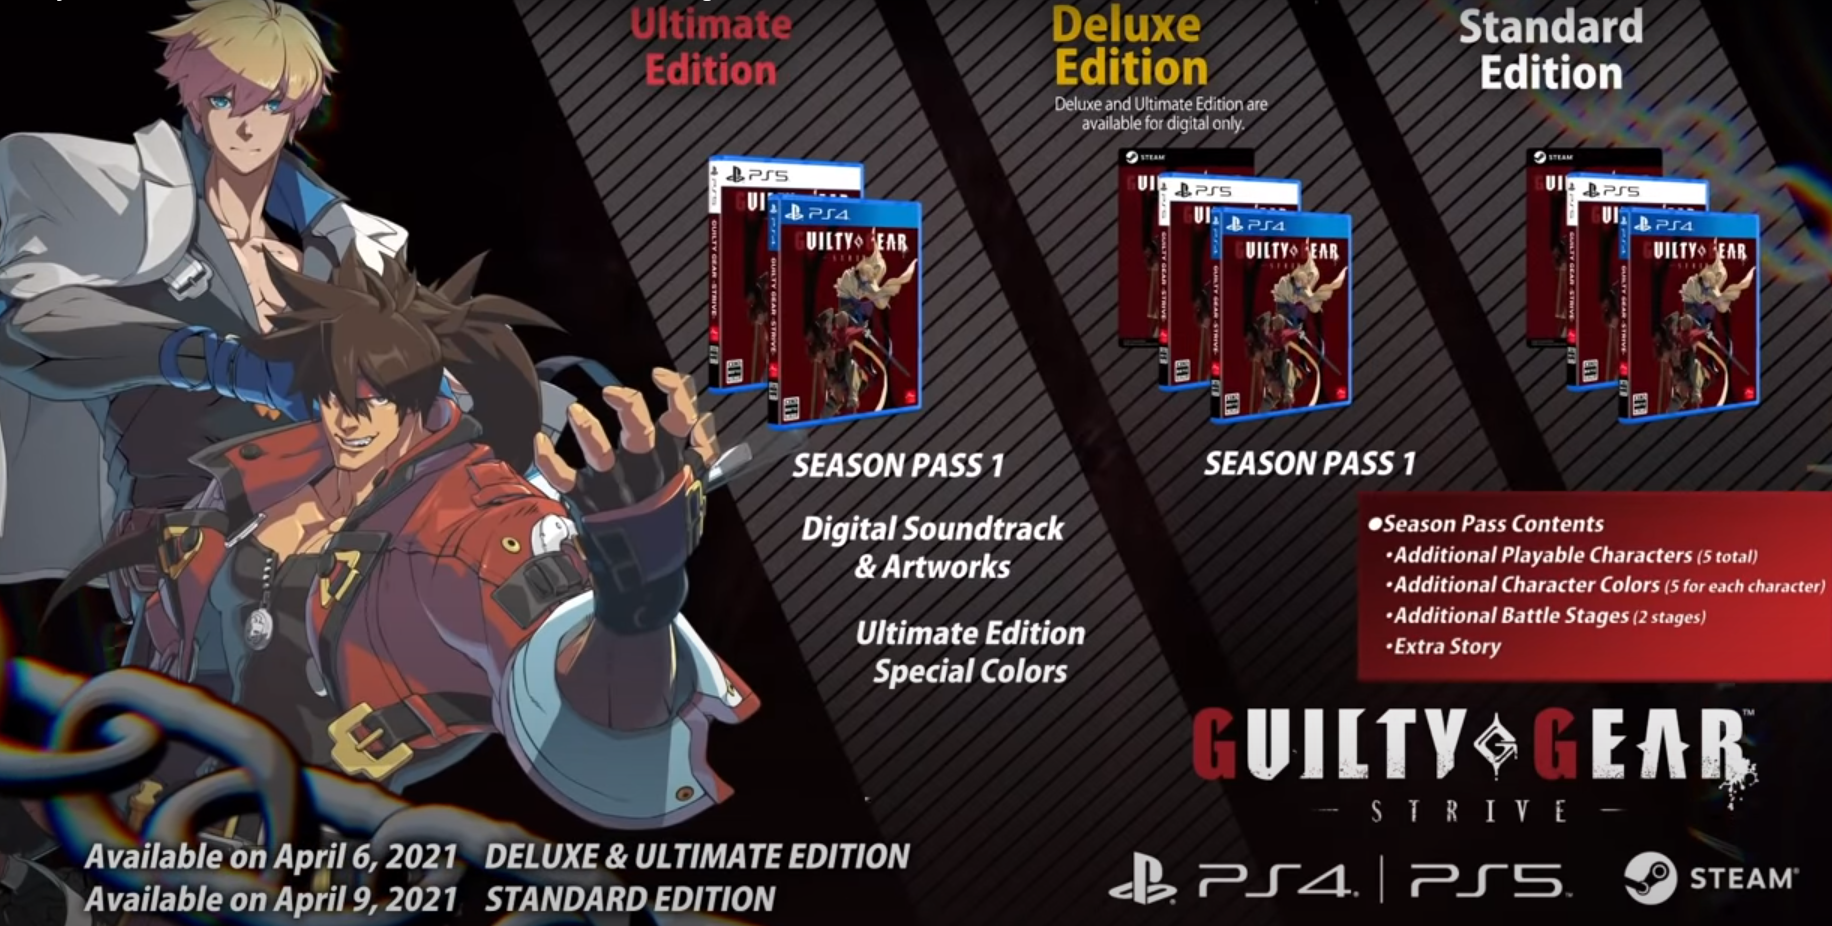 guilty gear strike game ps4 ps5 pc fight